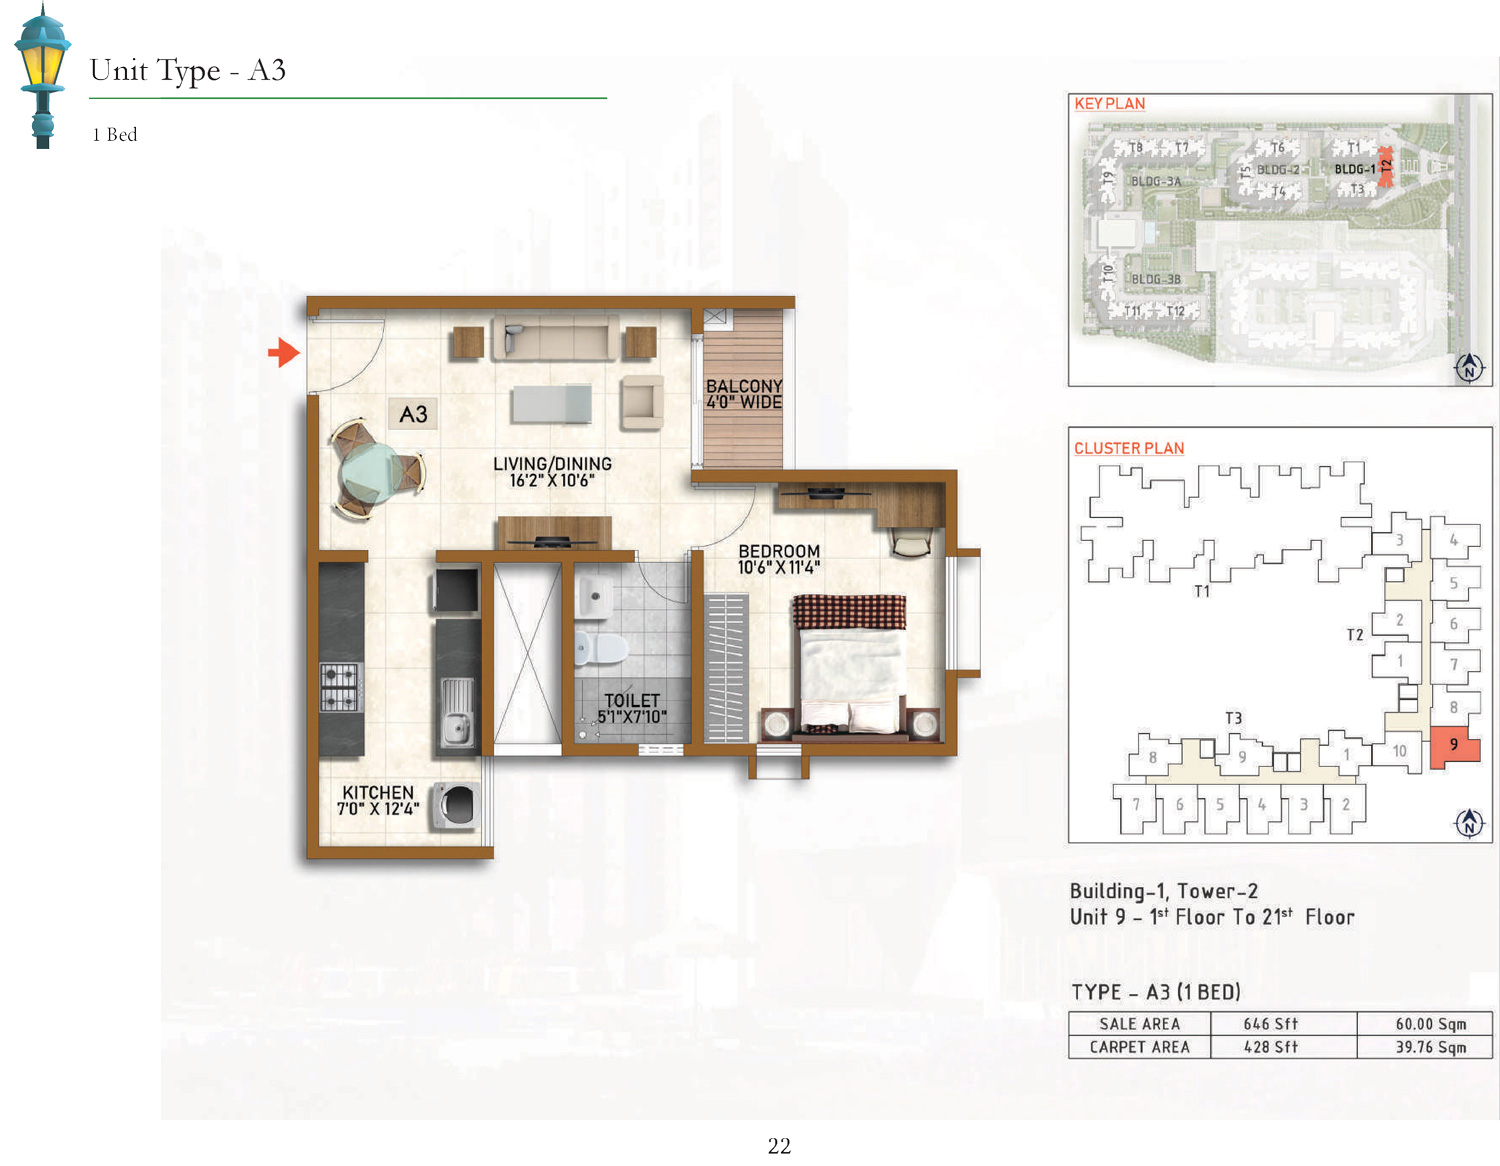 Type A3 - 646 Sq Ft